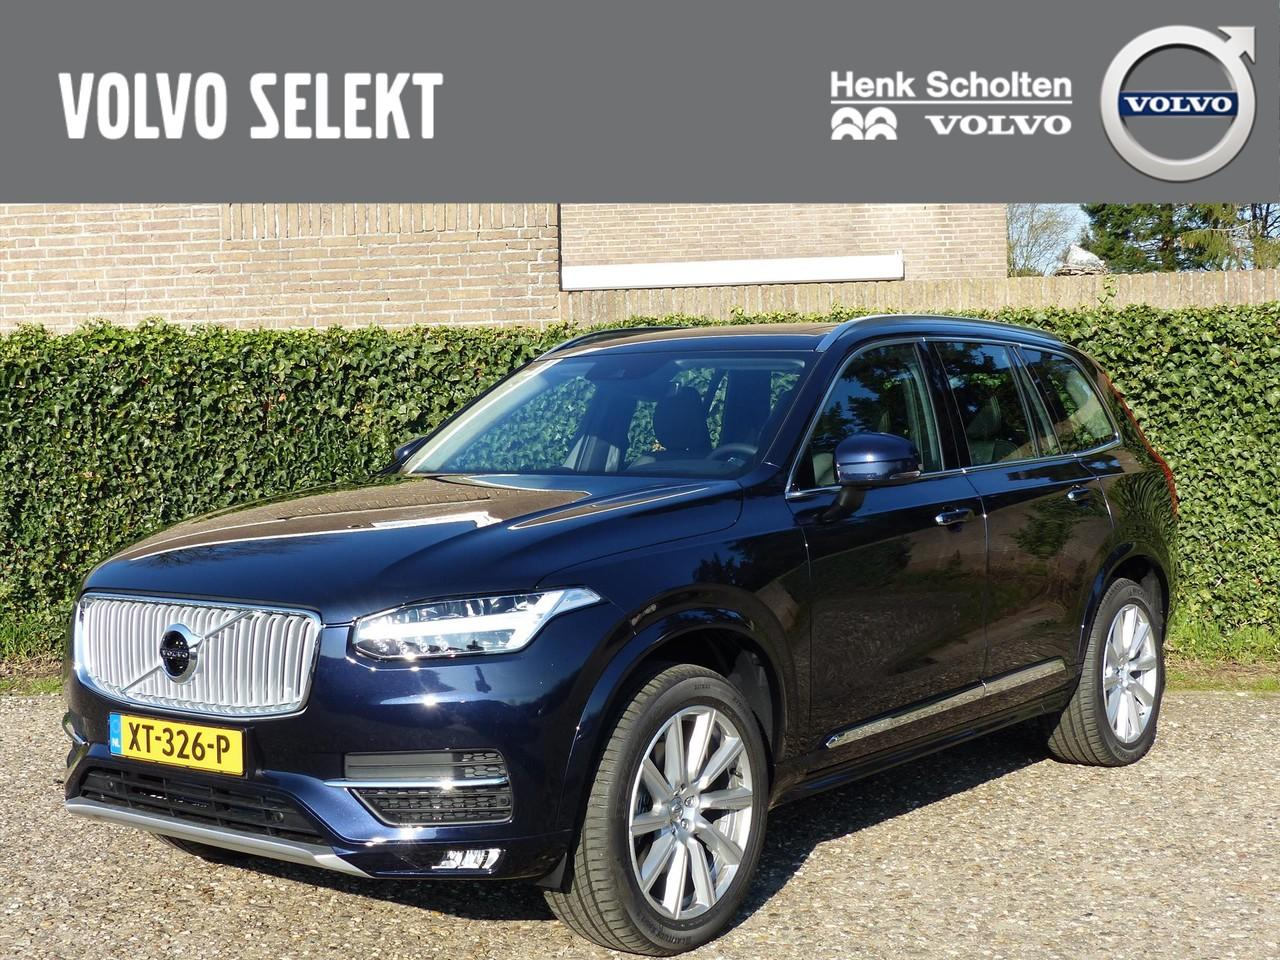 Volvo Xc90 T5 250pk awd gt inscription, business pack connect pro, scandina